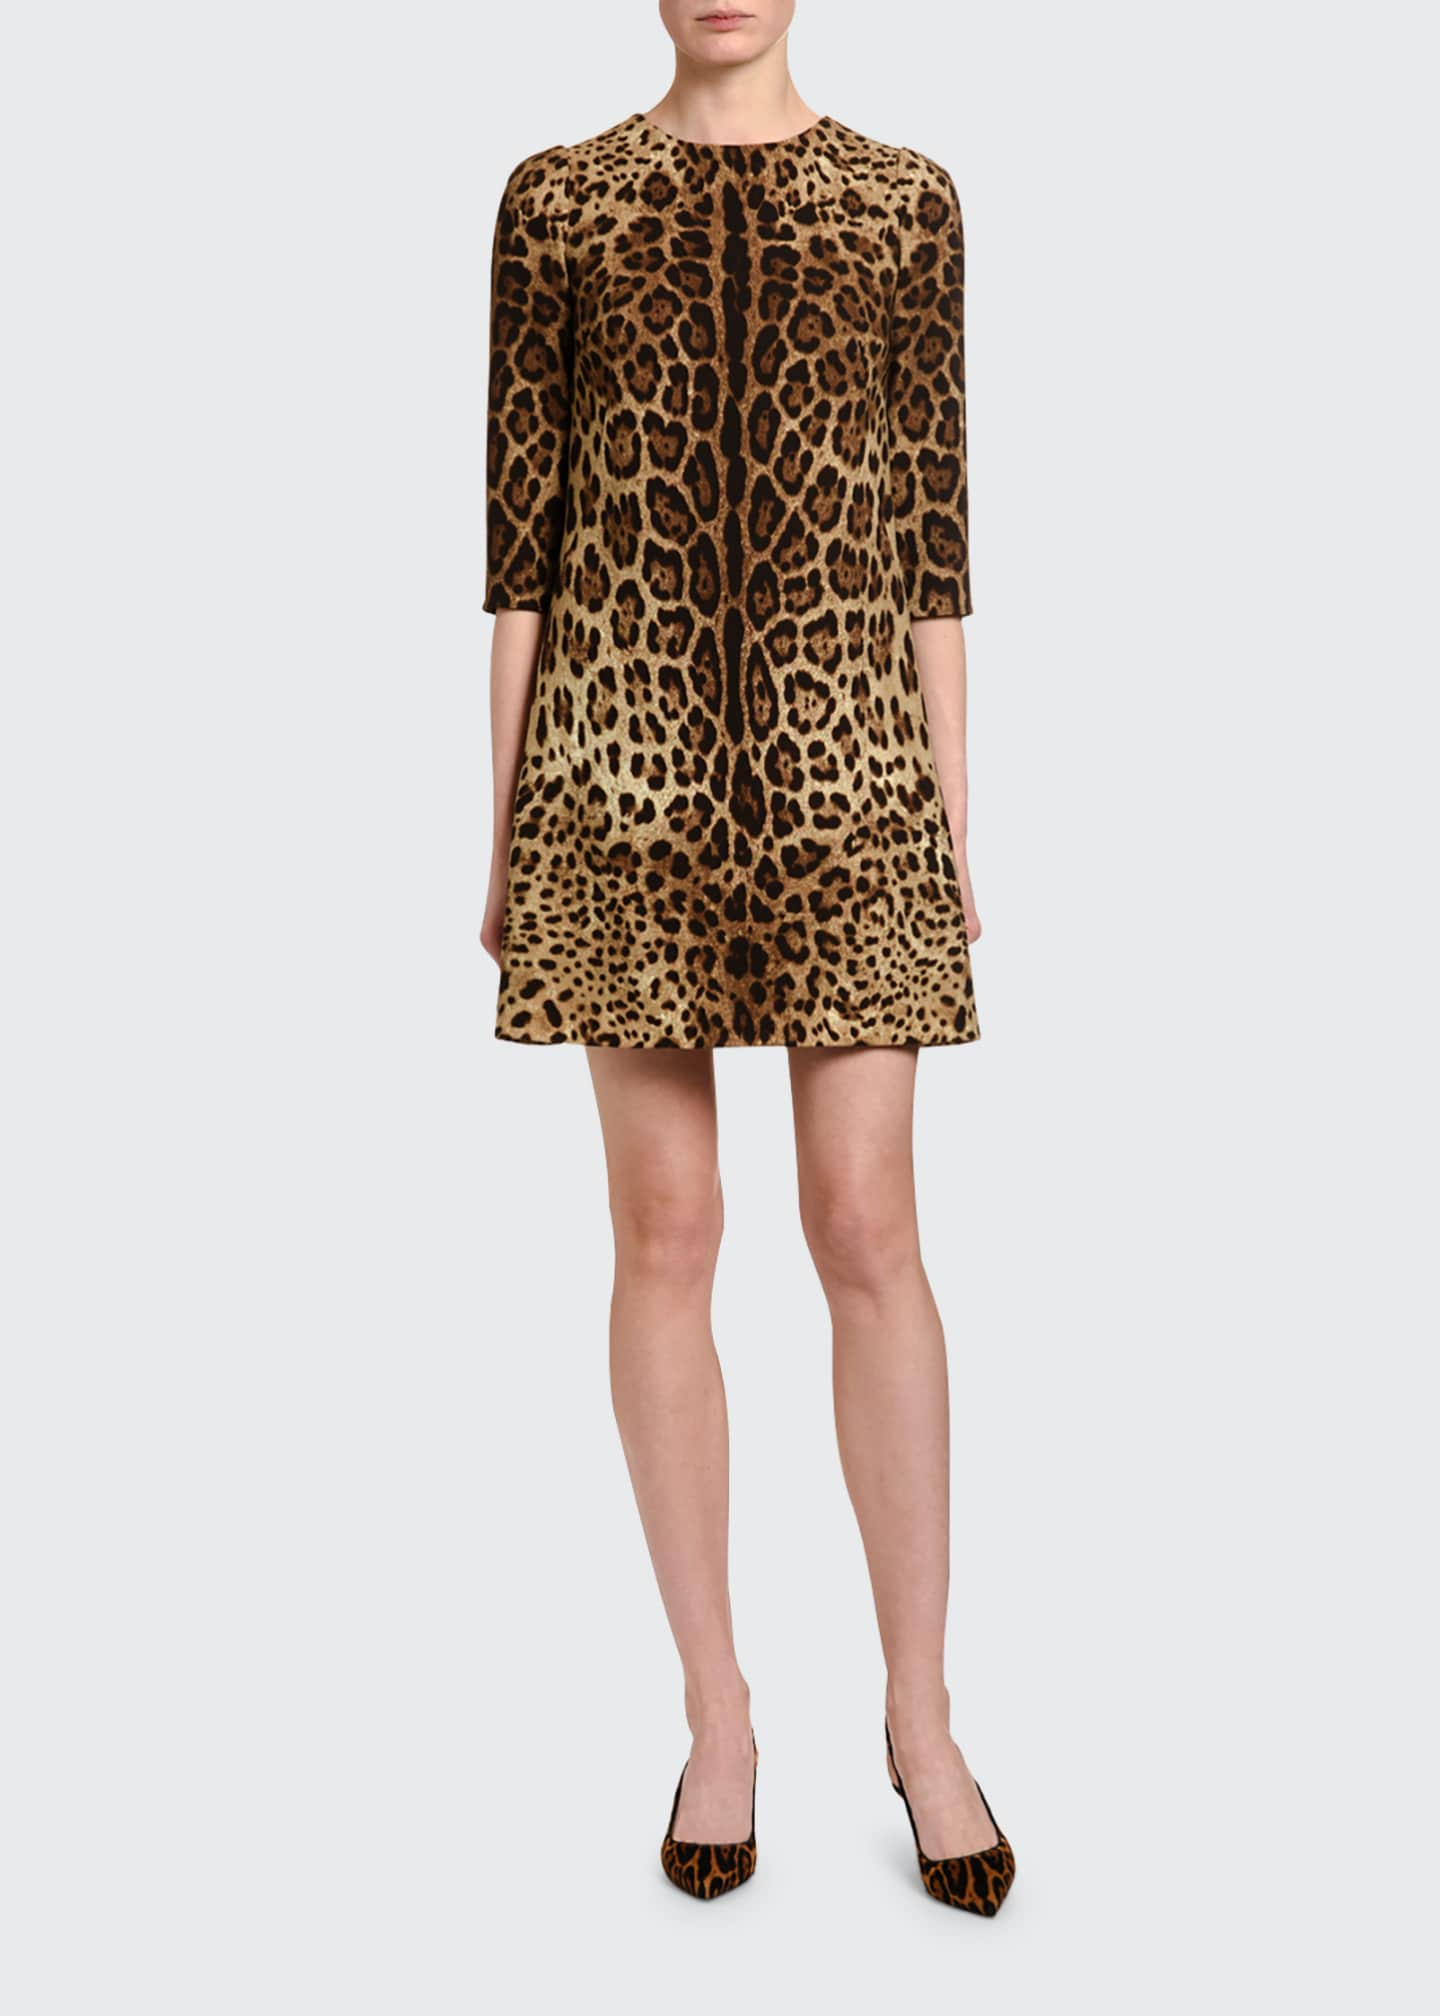 Dolce & Gabbana Leopard-Print Crepe 3/4-Sleeve Dress